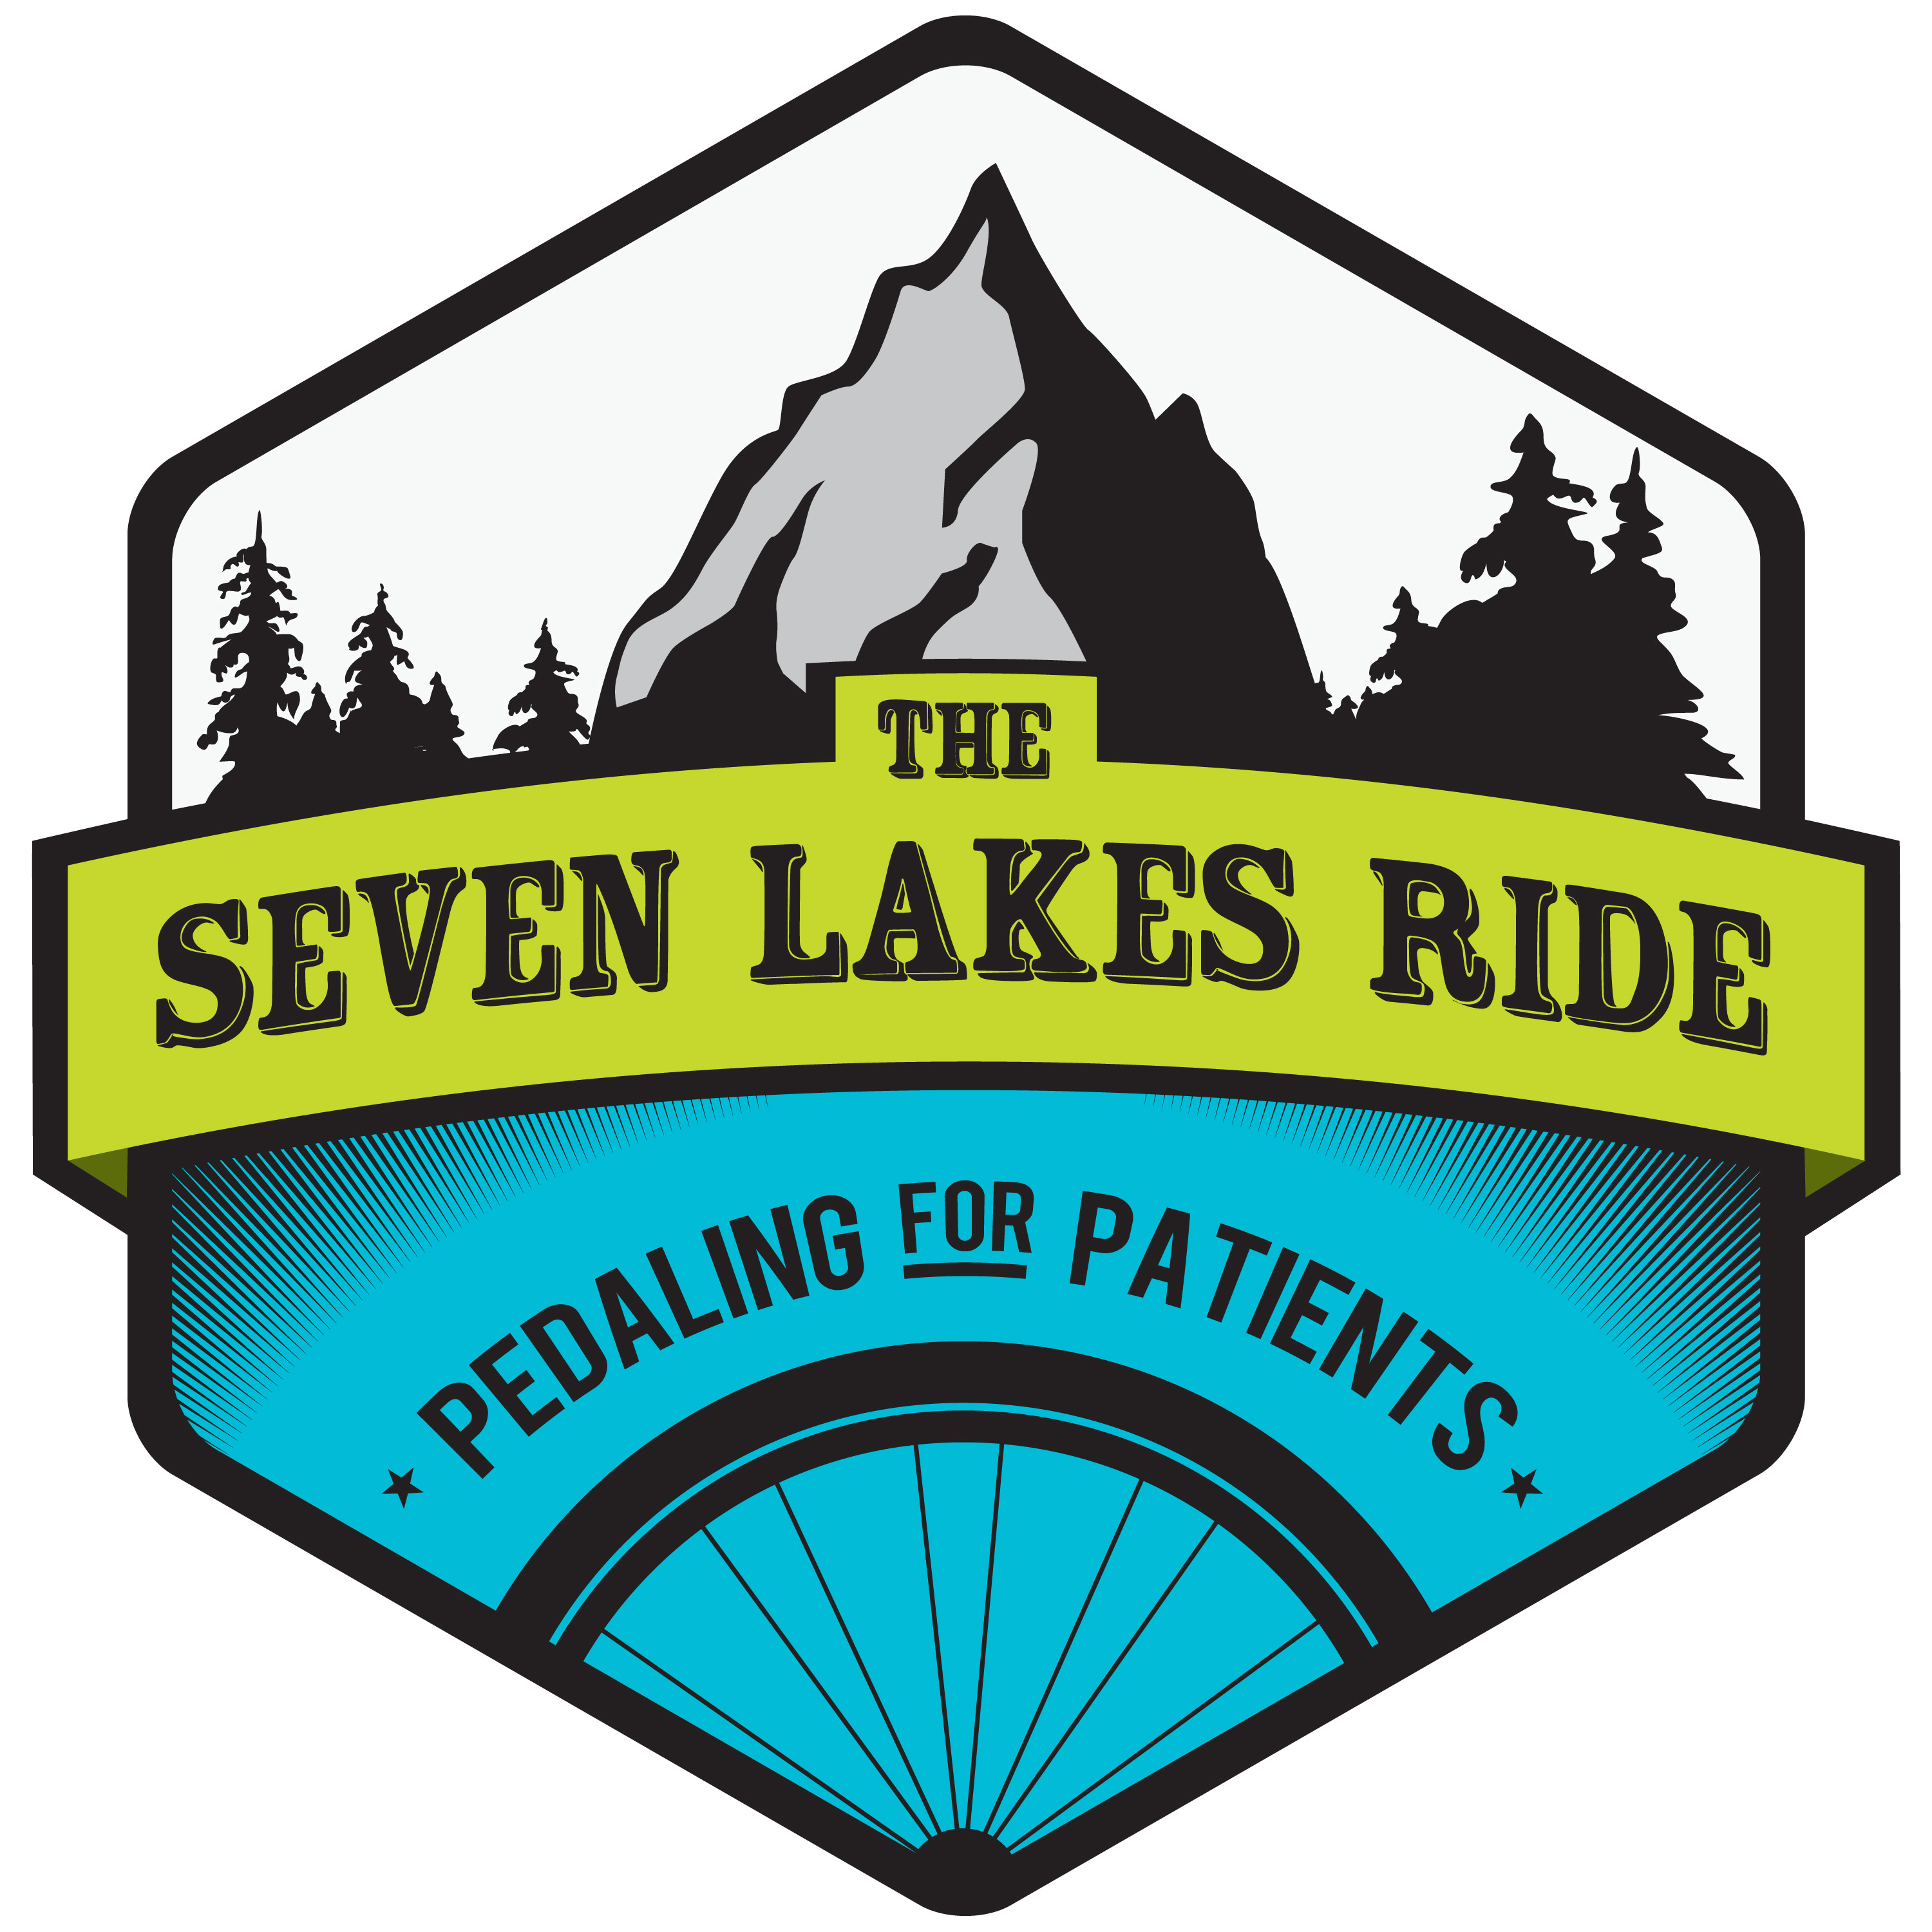 Seven Lakes Ride, Stafford Springs CT: